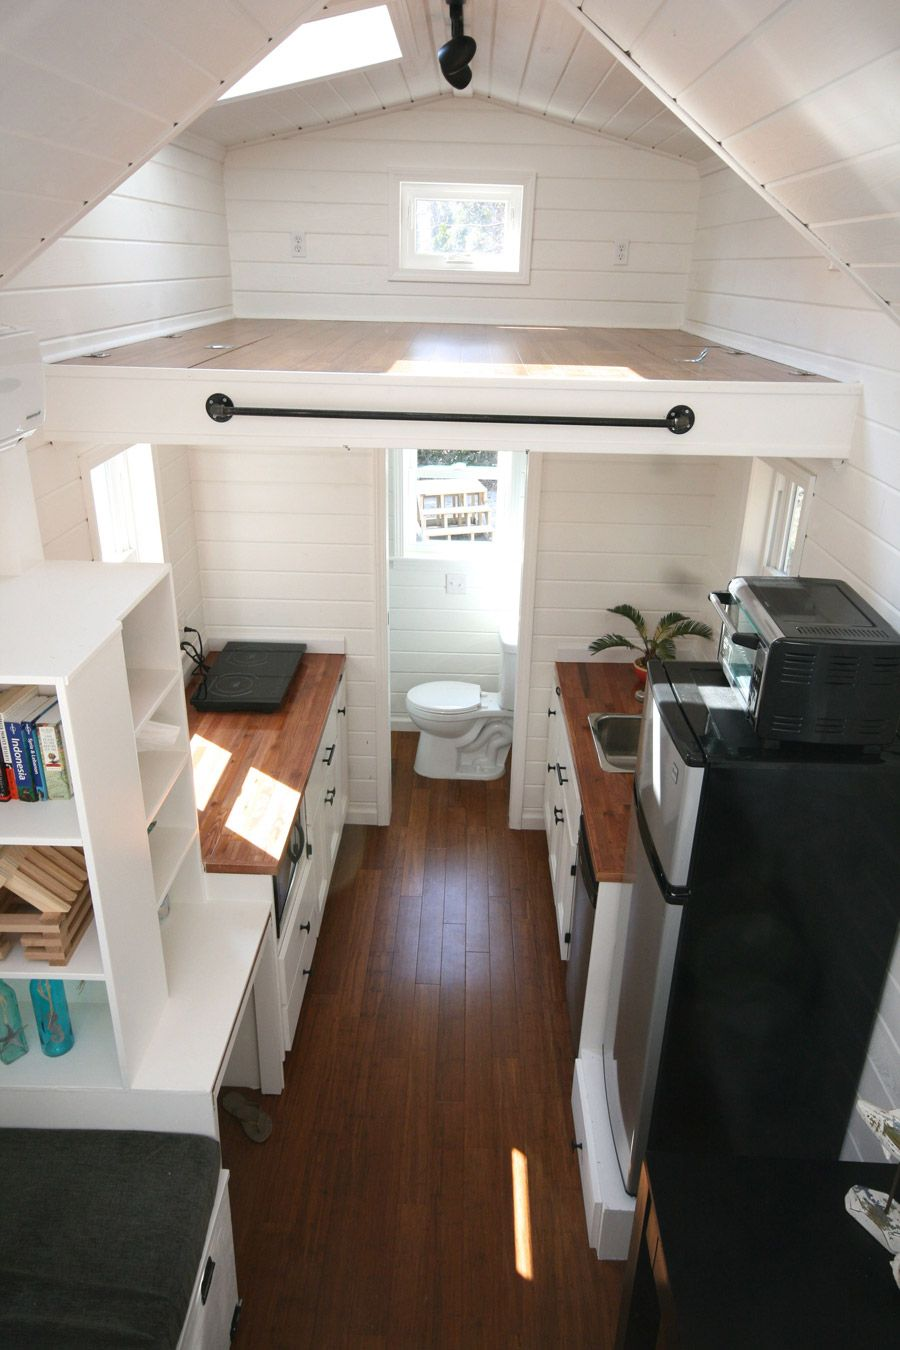 Theinaugural Full Downstairs View Love All The White And Wood - Tiny house on wheels interior